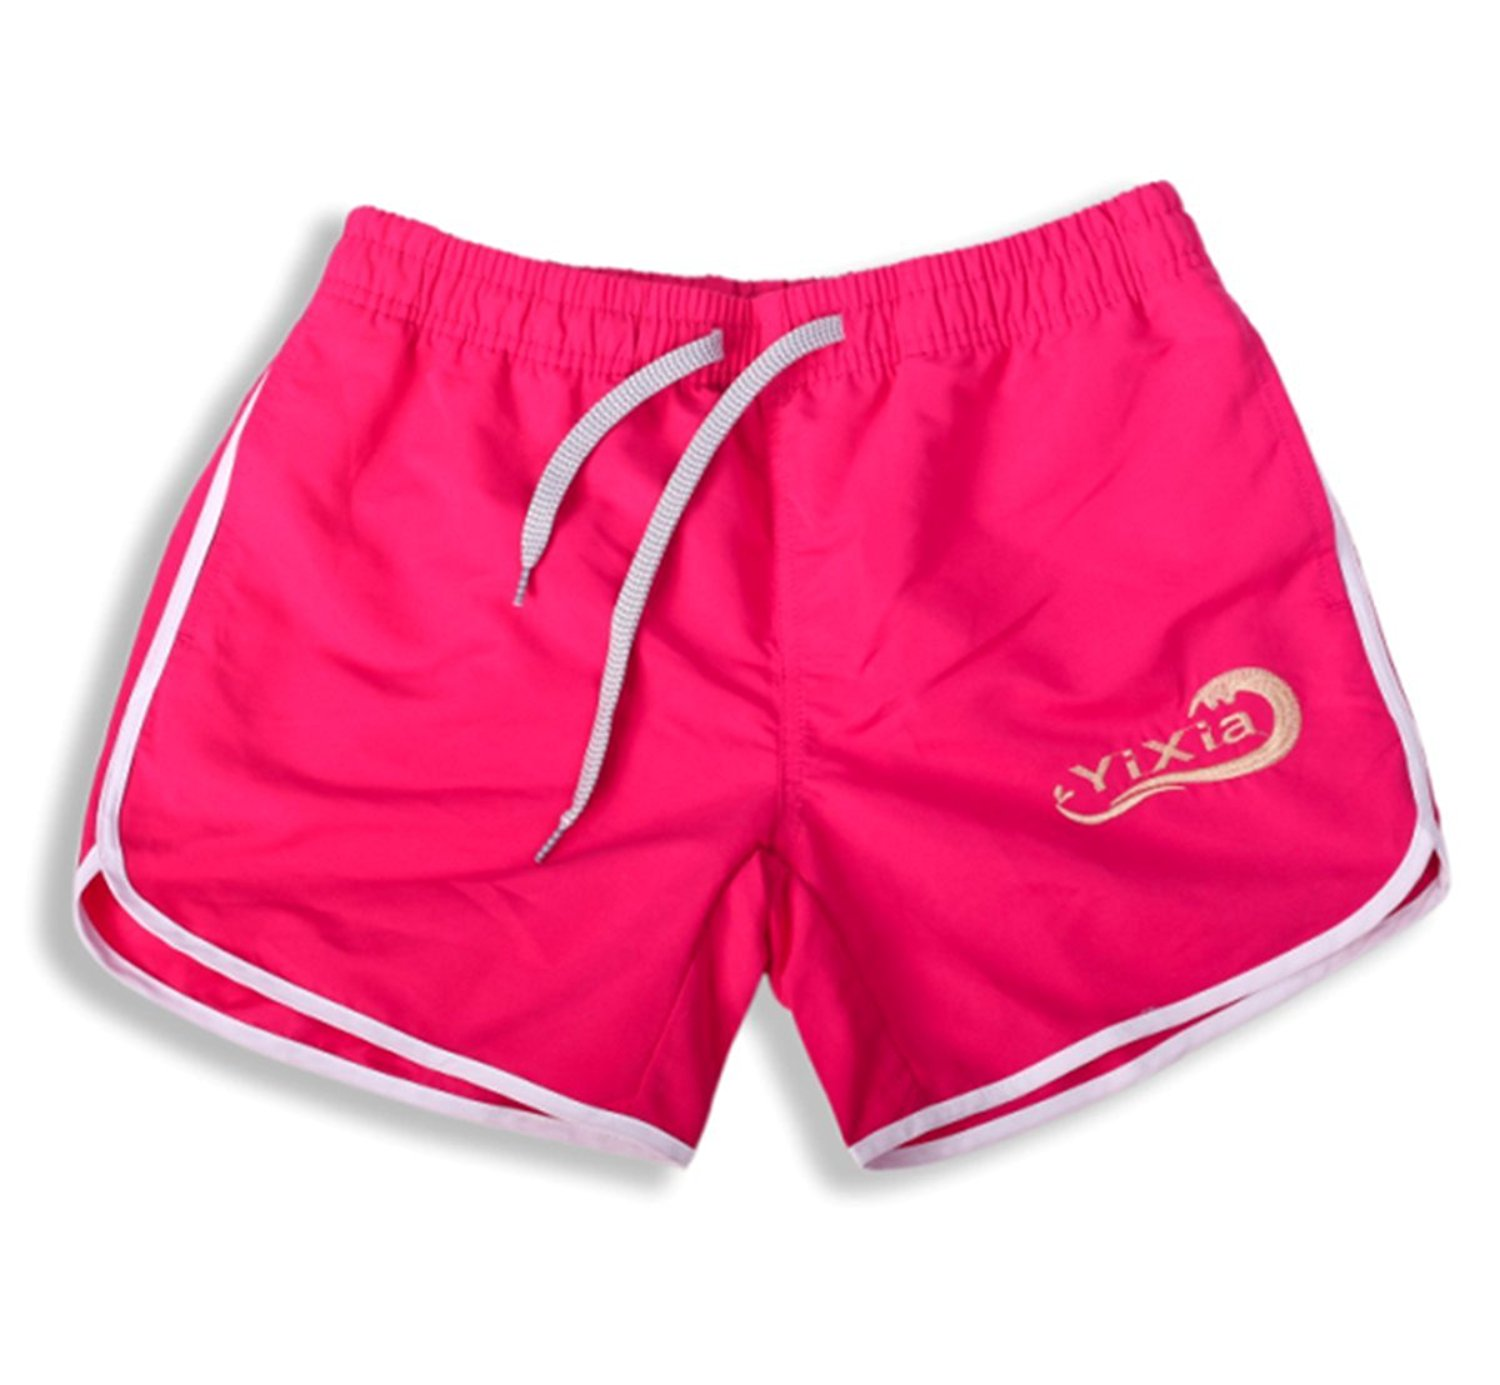 Prefer To Life Women's Board Shorts Bathing Suits Swimming Trunks Beach Shorts